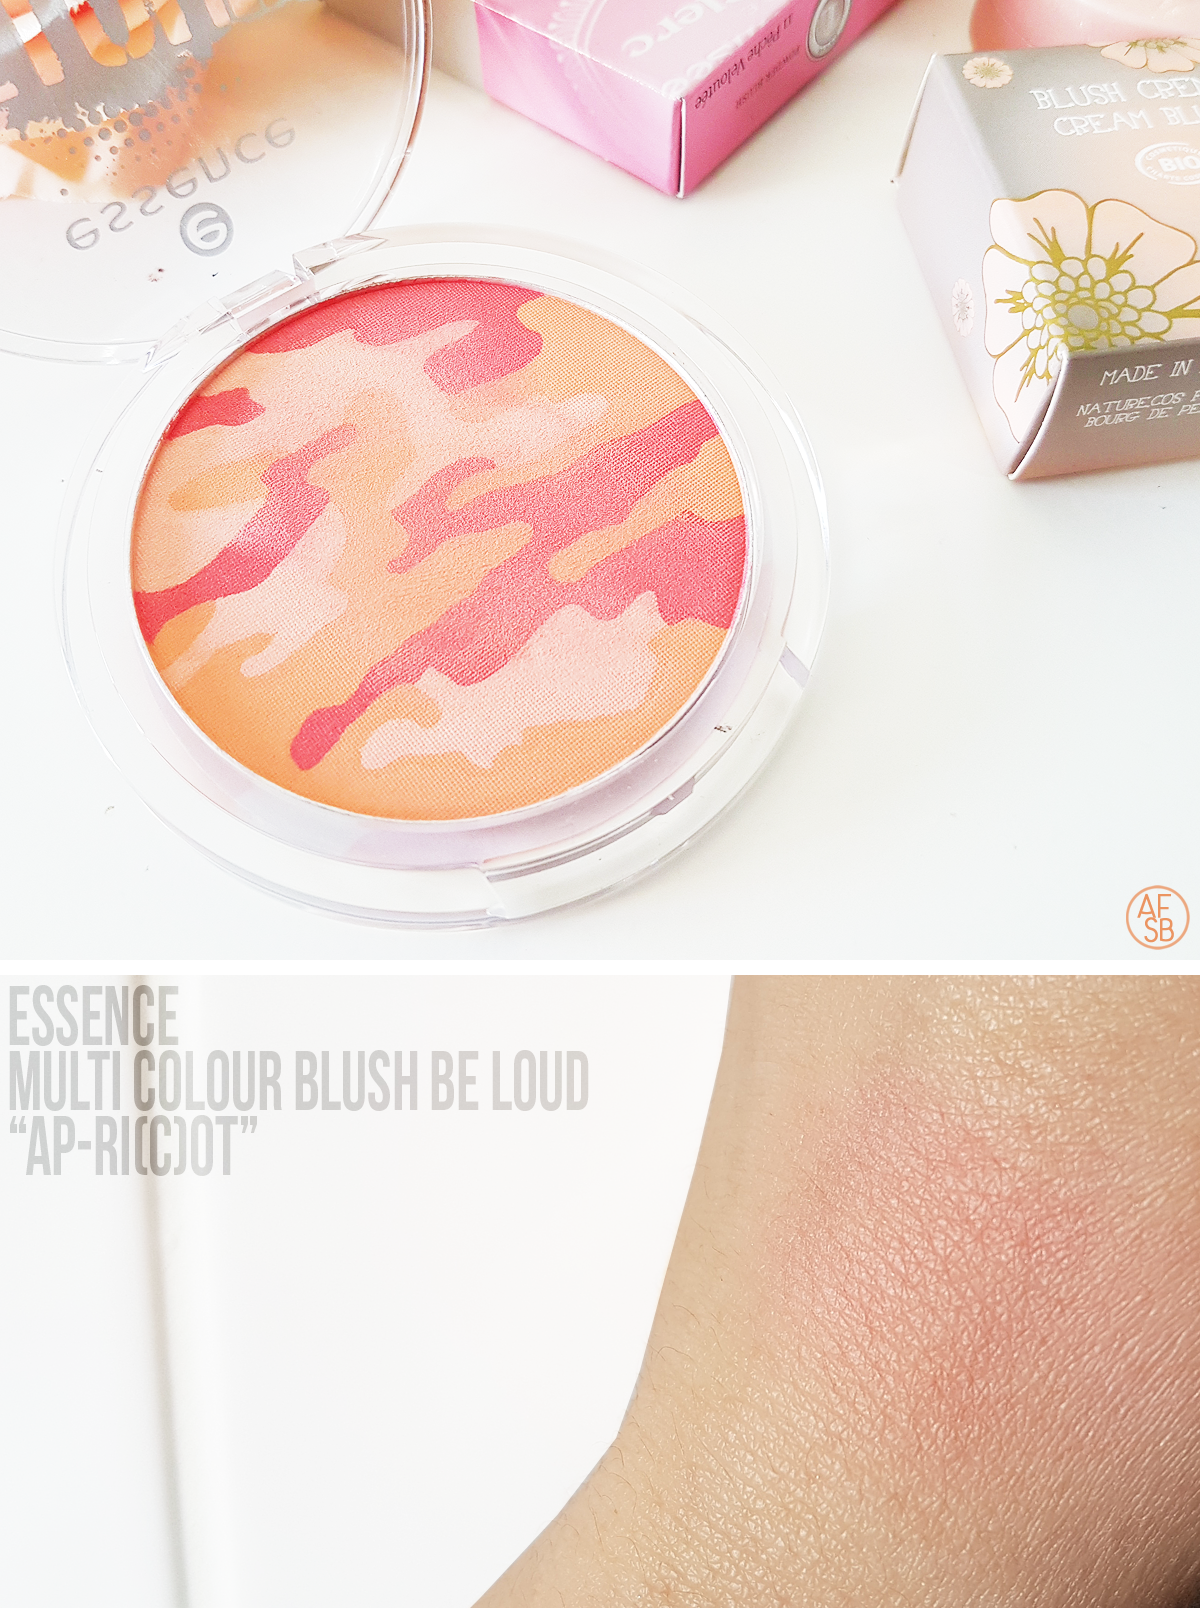 Essence - Multi Colour Blush Be Loud in Ap-ri(c)ot